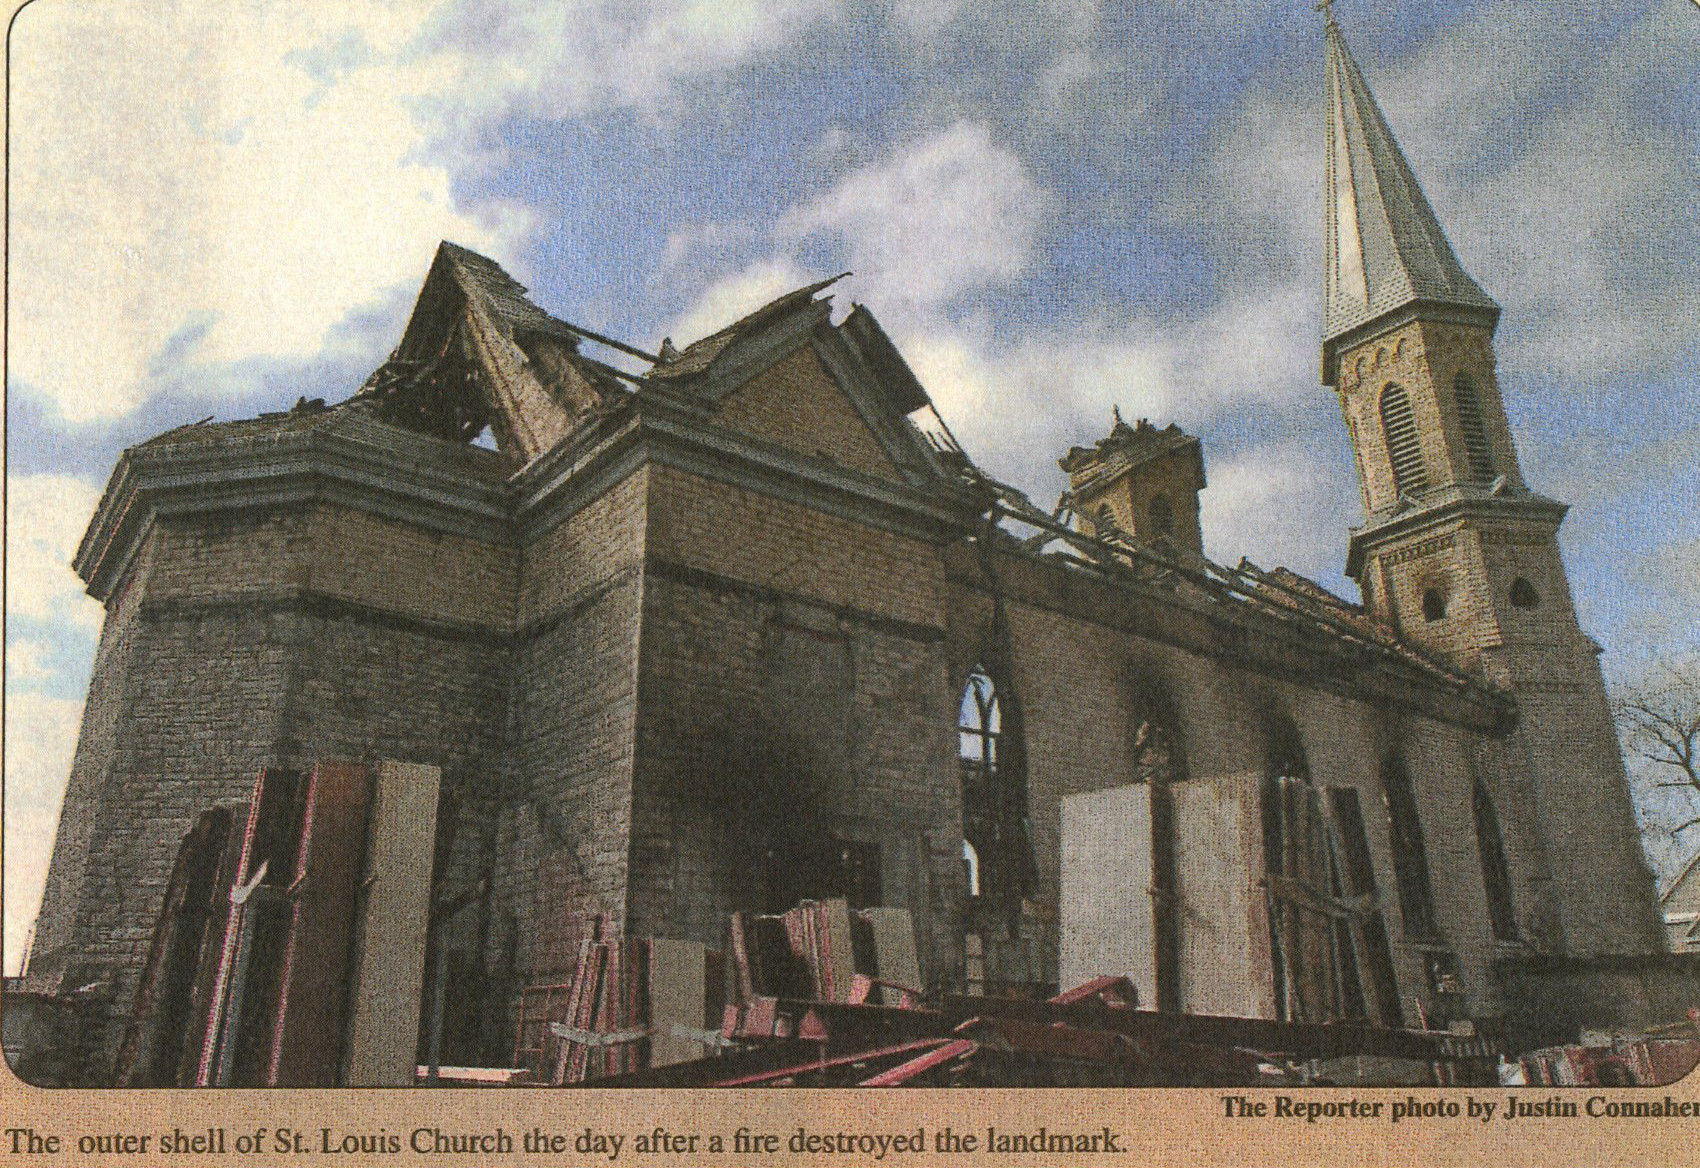 Remains of St. Louis Church after the fire, March 2007.